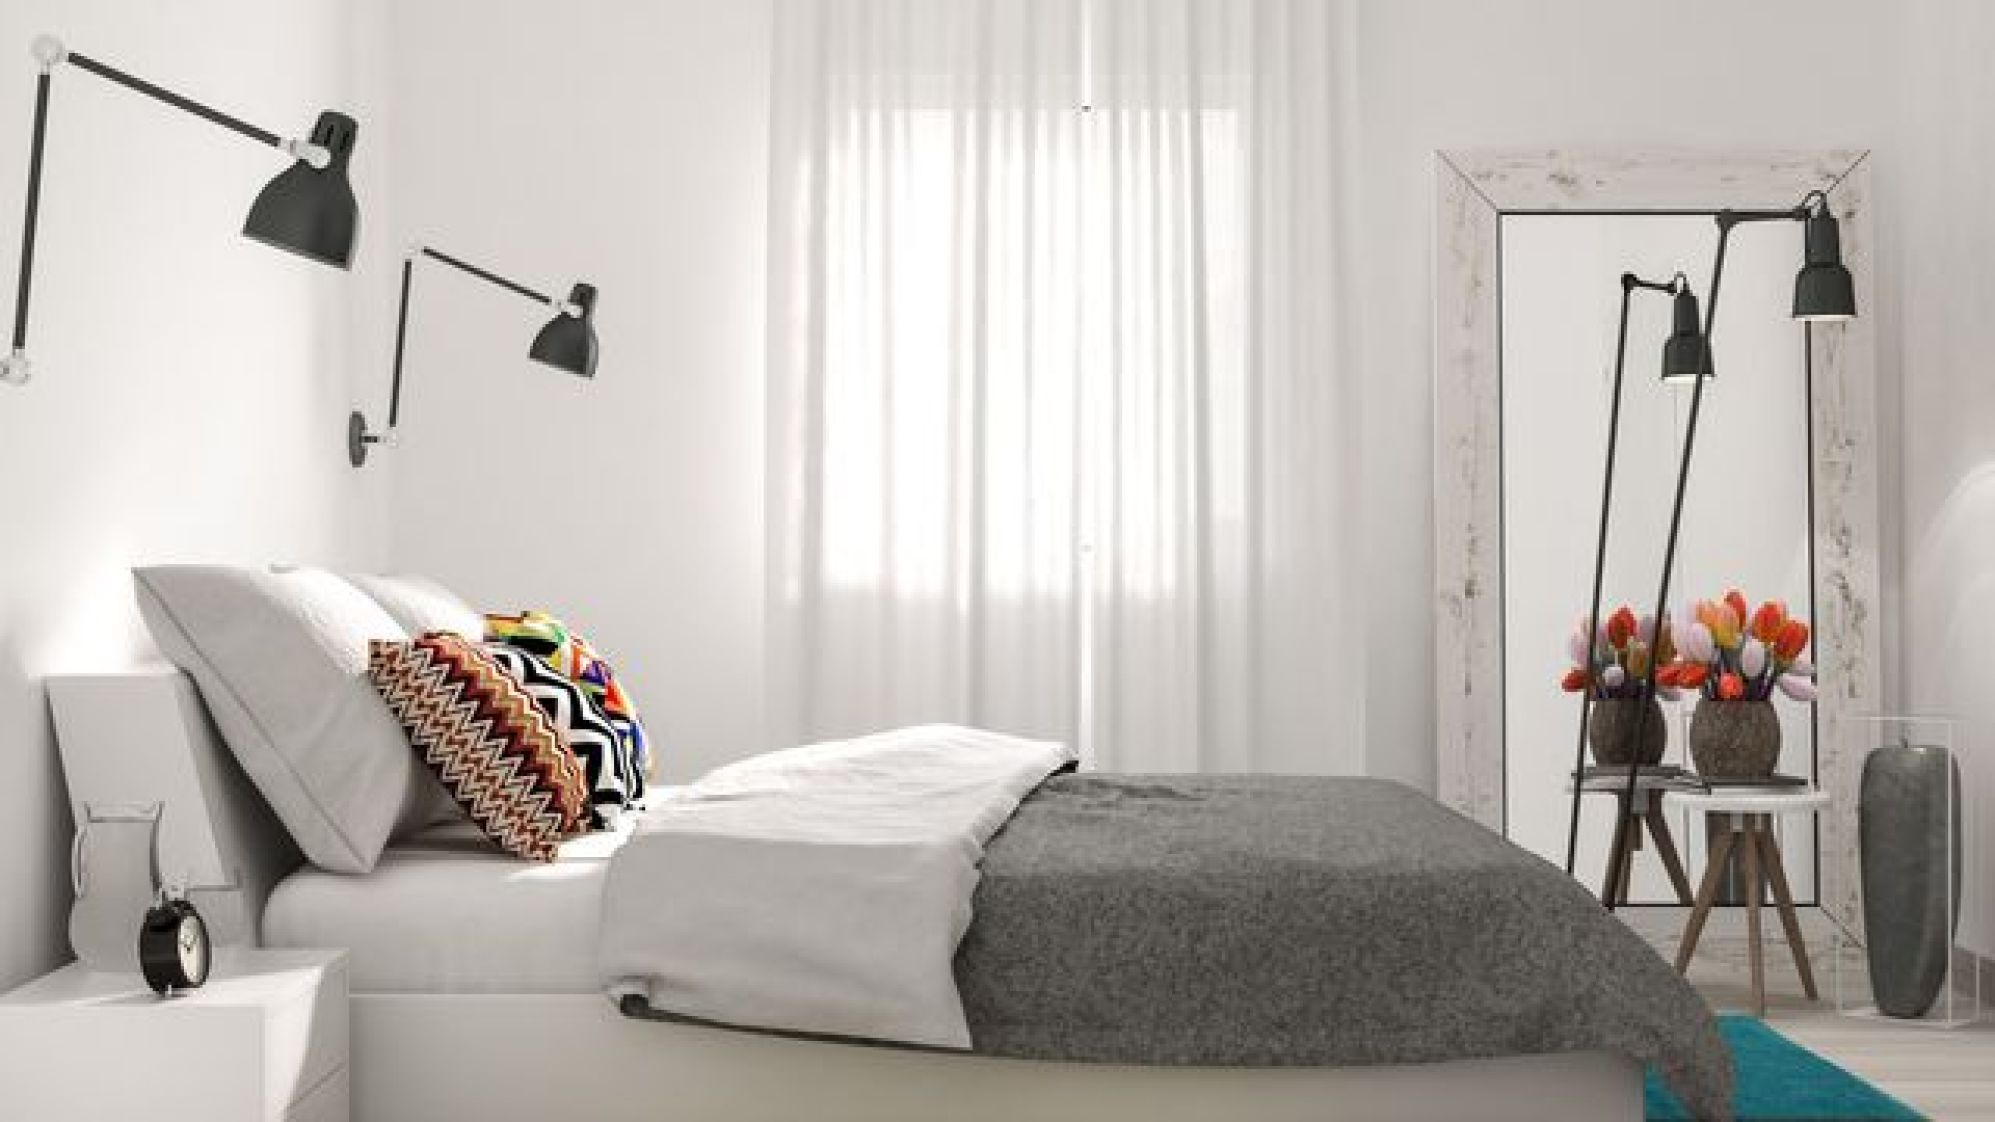 Removing heavy drapes will lighten the mood in the room.